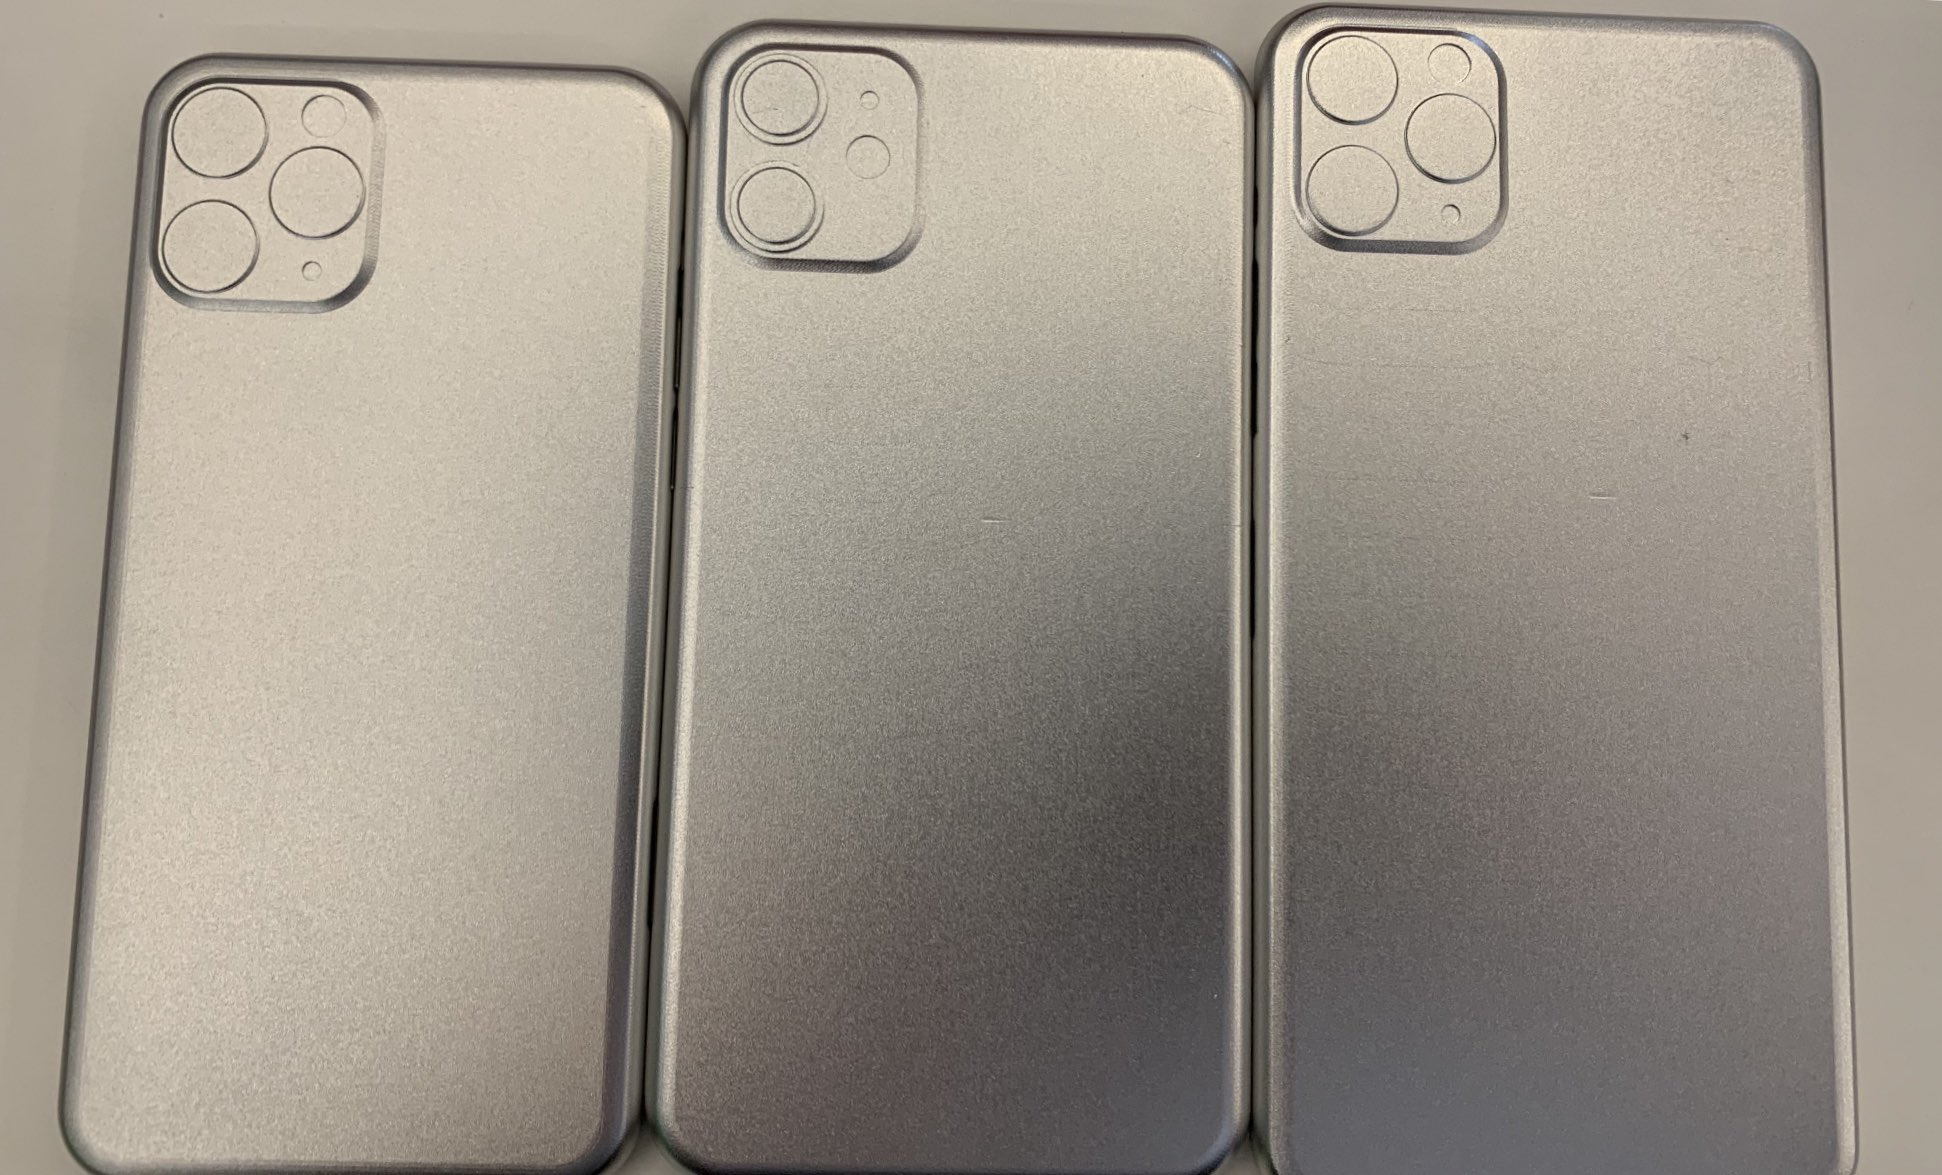 2019 iPhone molds